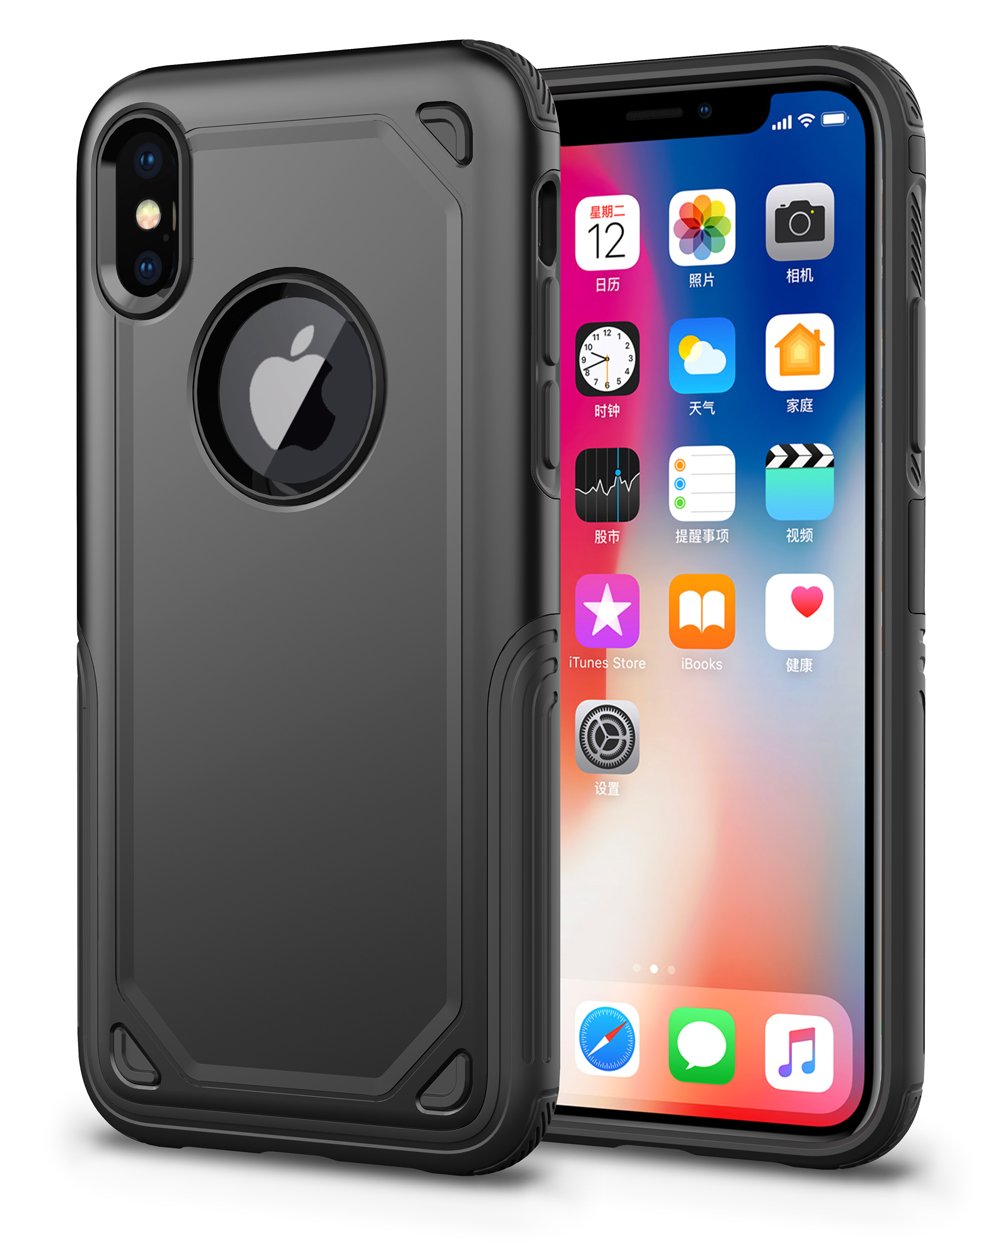 2018 Amazon new design Mobile phone cover for iphone X case cover,Armor case cover for iphone X